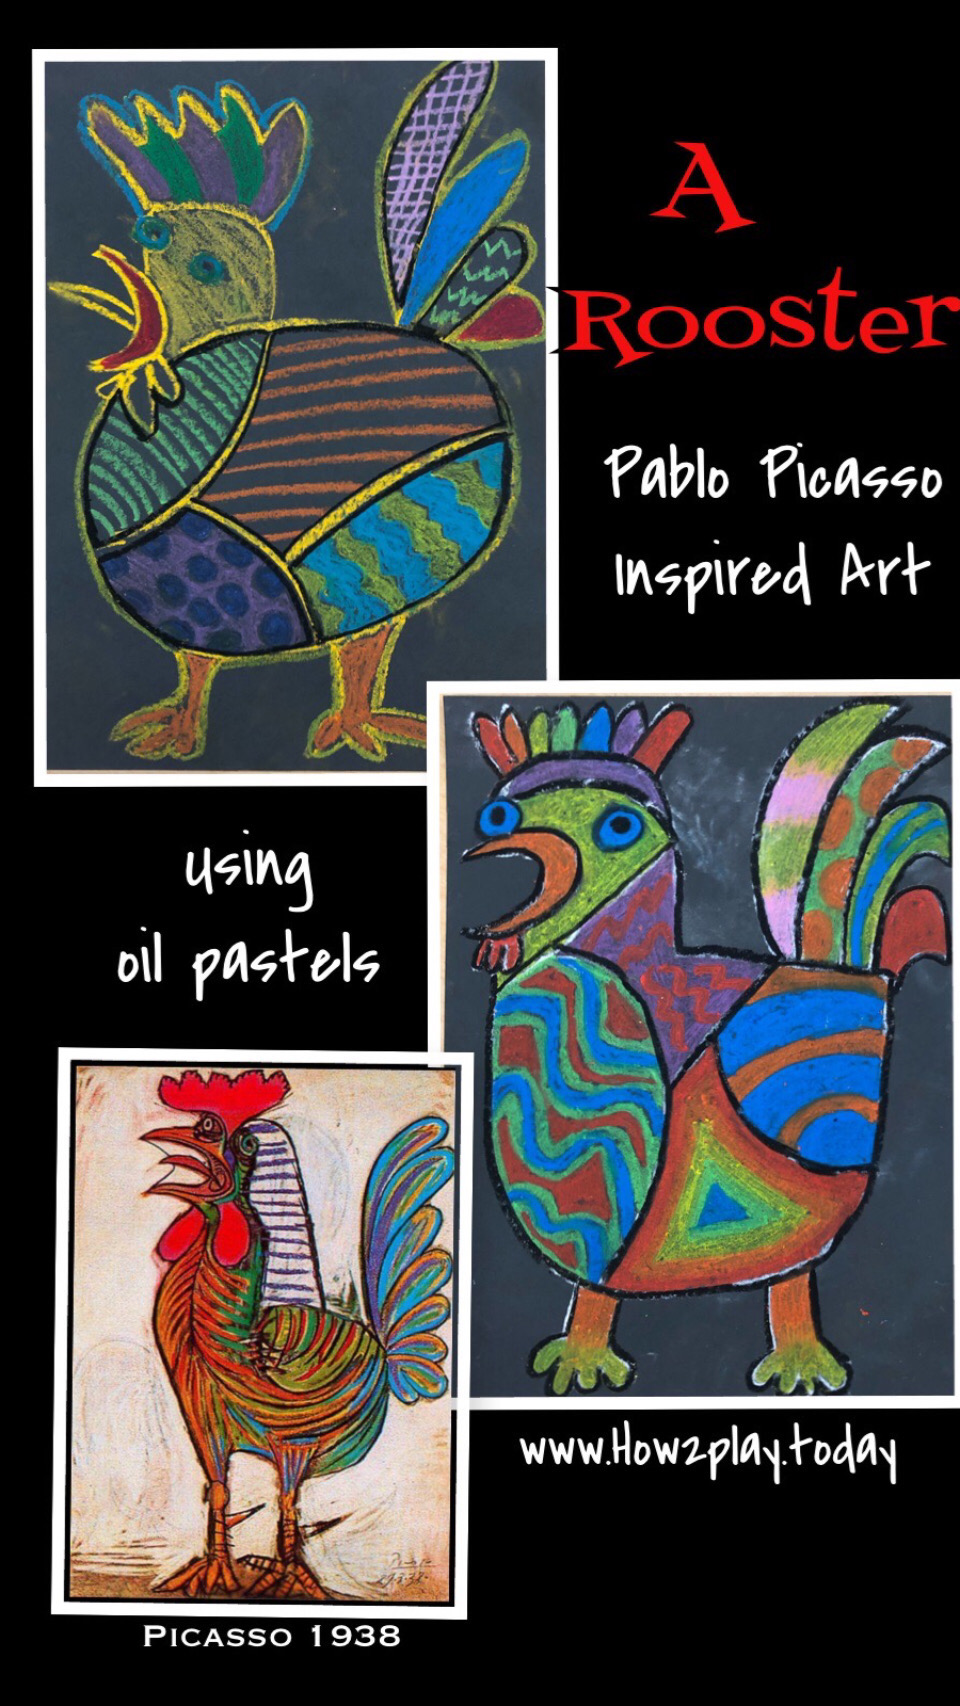 Pablo Picasso inspired art learning / lesson plans for kids. Come explore Cubism for preschool and elementary age children. Children will learn Elements of Art, Principles of Design while having the freedom of creative expression.